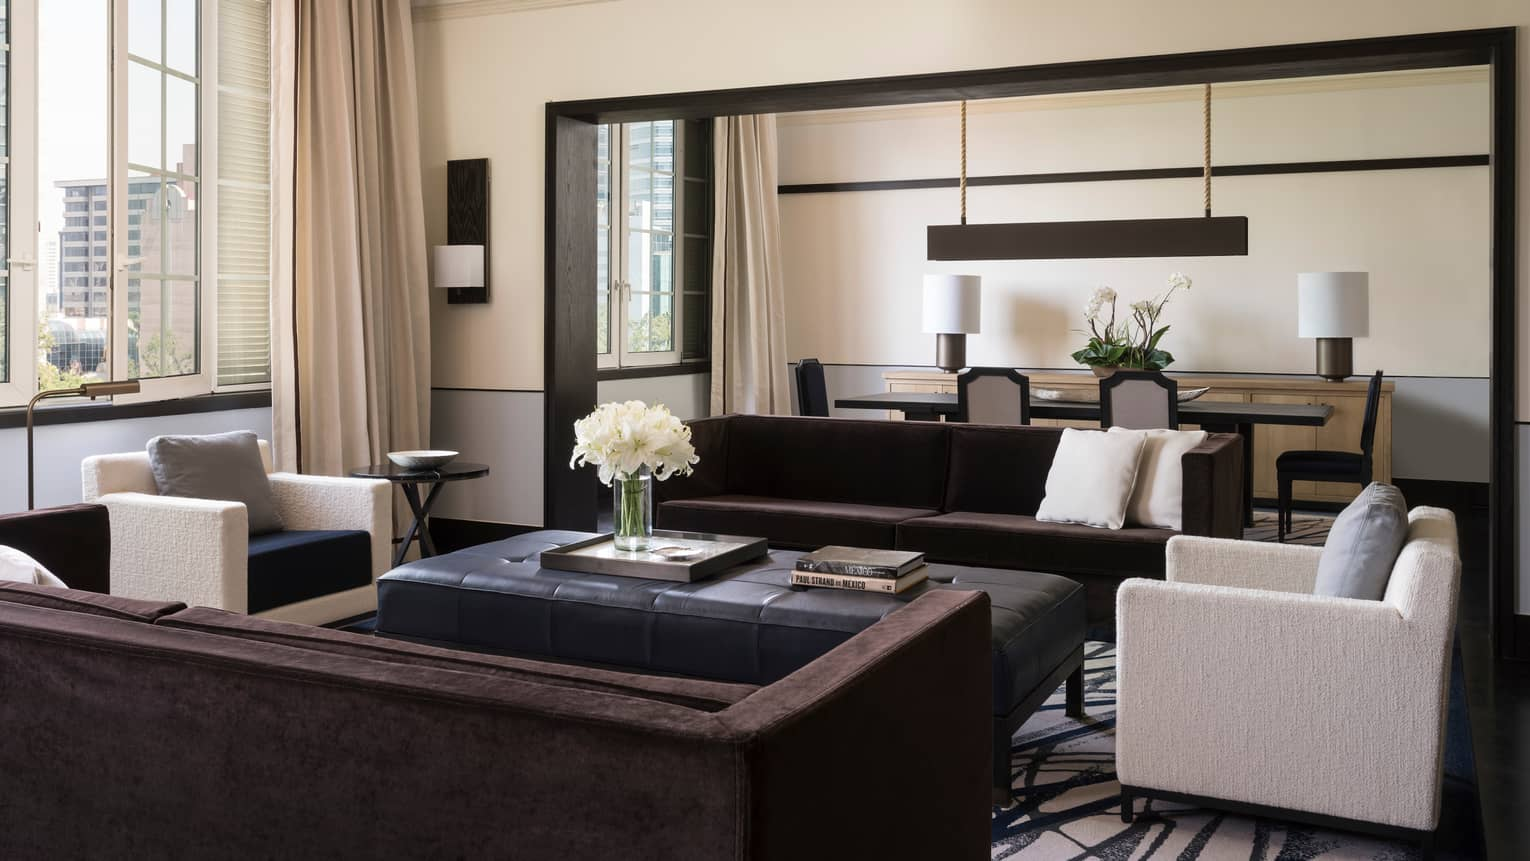 Presidential Suite bright living room with long sofas, white armchairs, tall sunny window, dining room